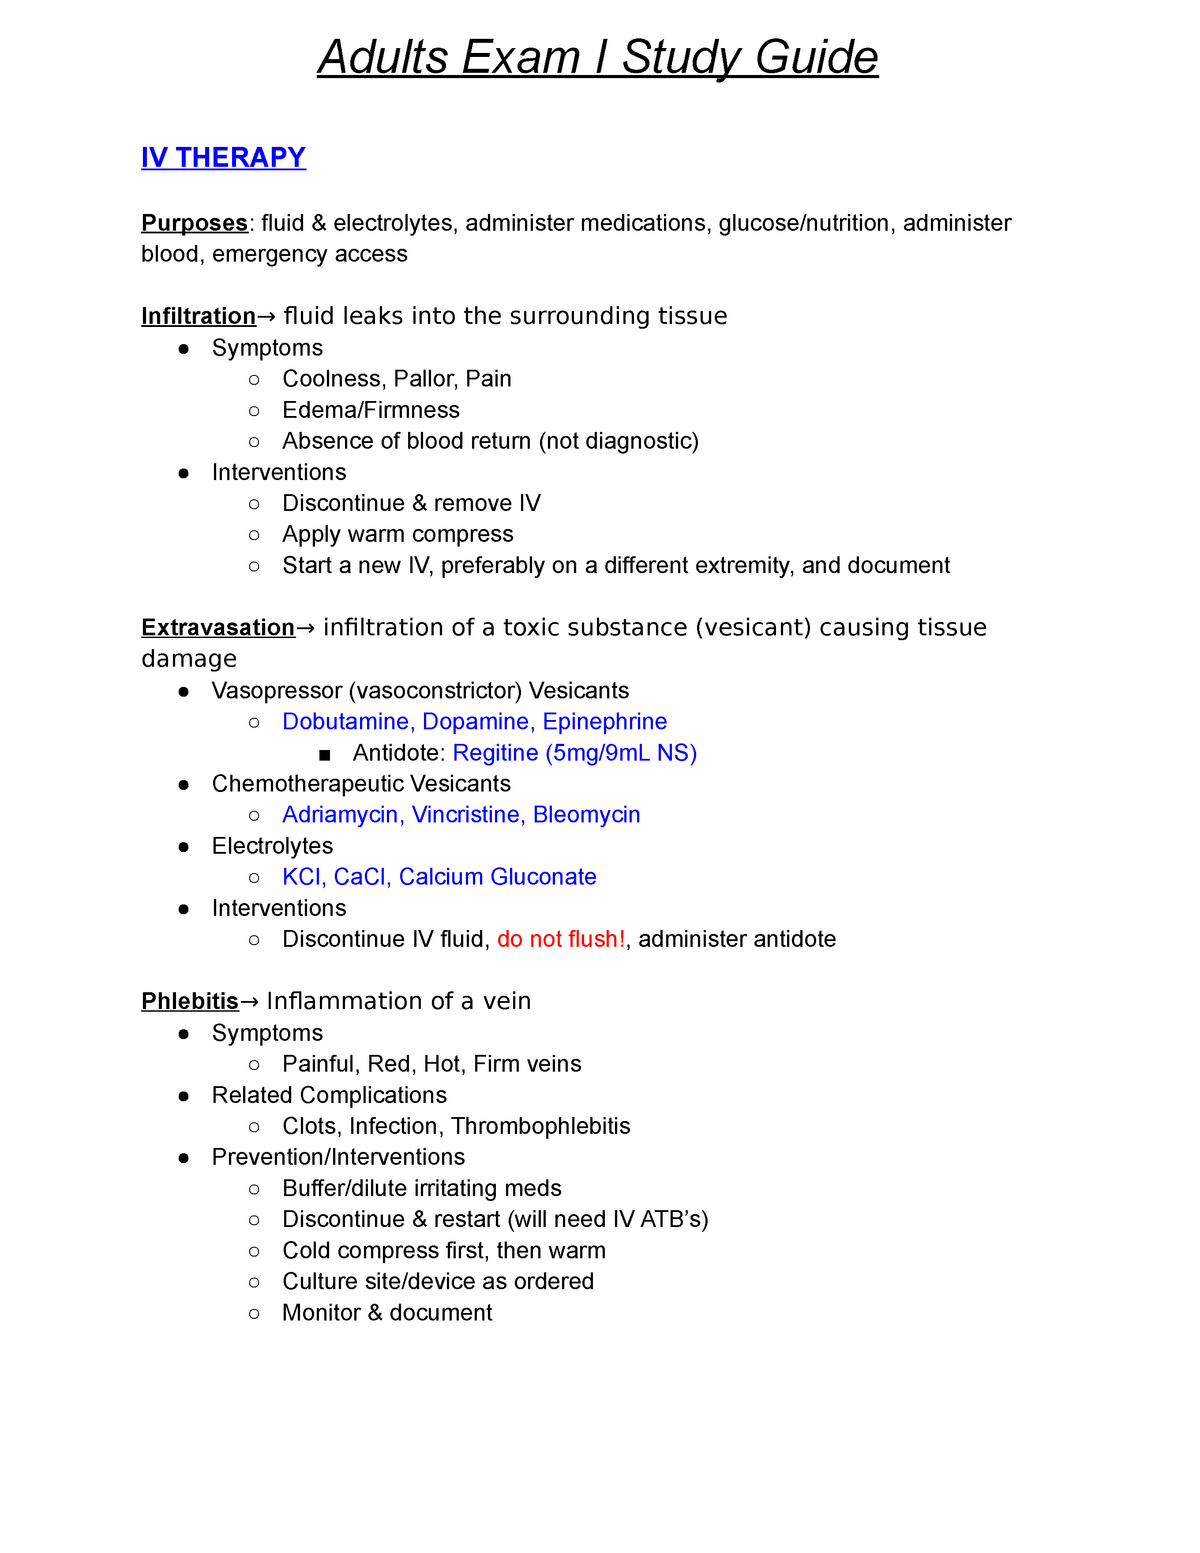 iv therapy exam study guide